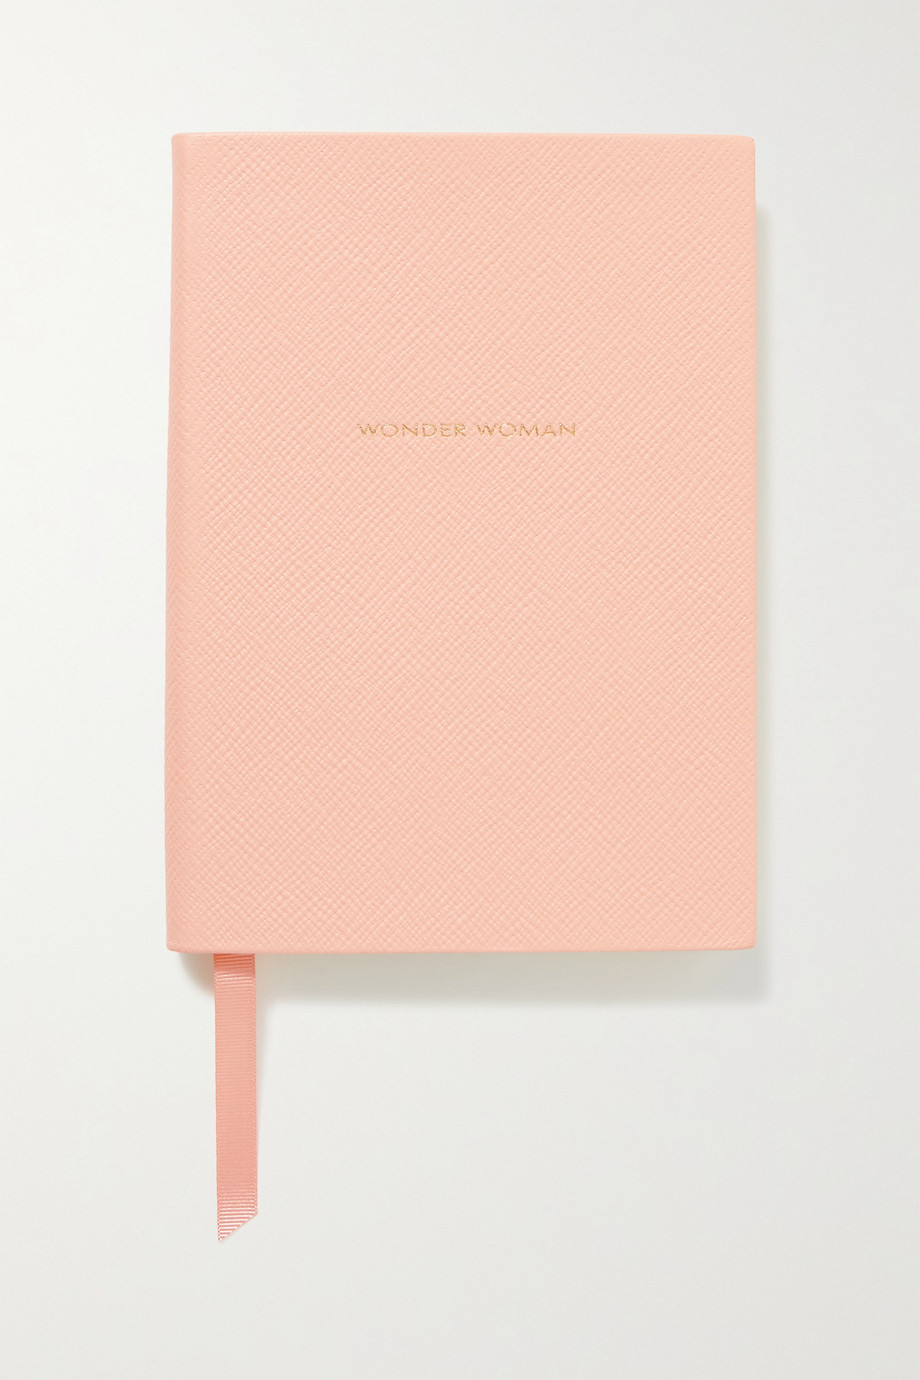 Smythson Wonder Woman Soho textured-leather notebook